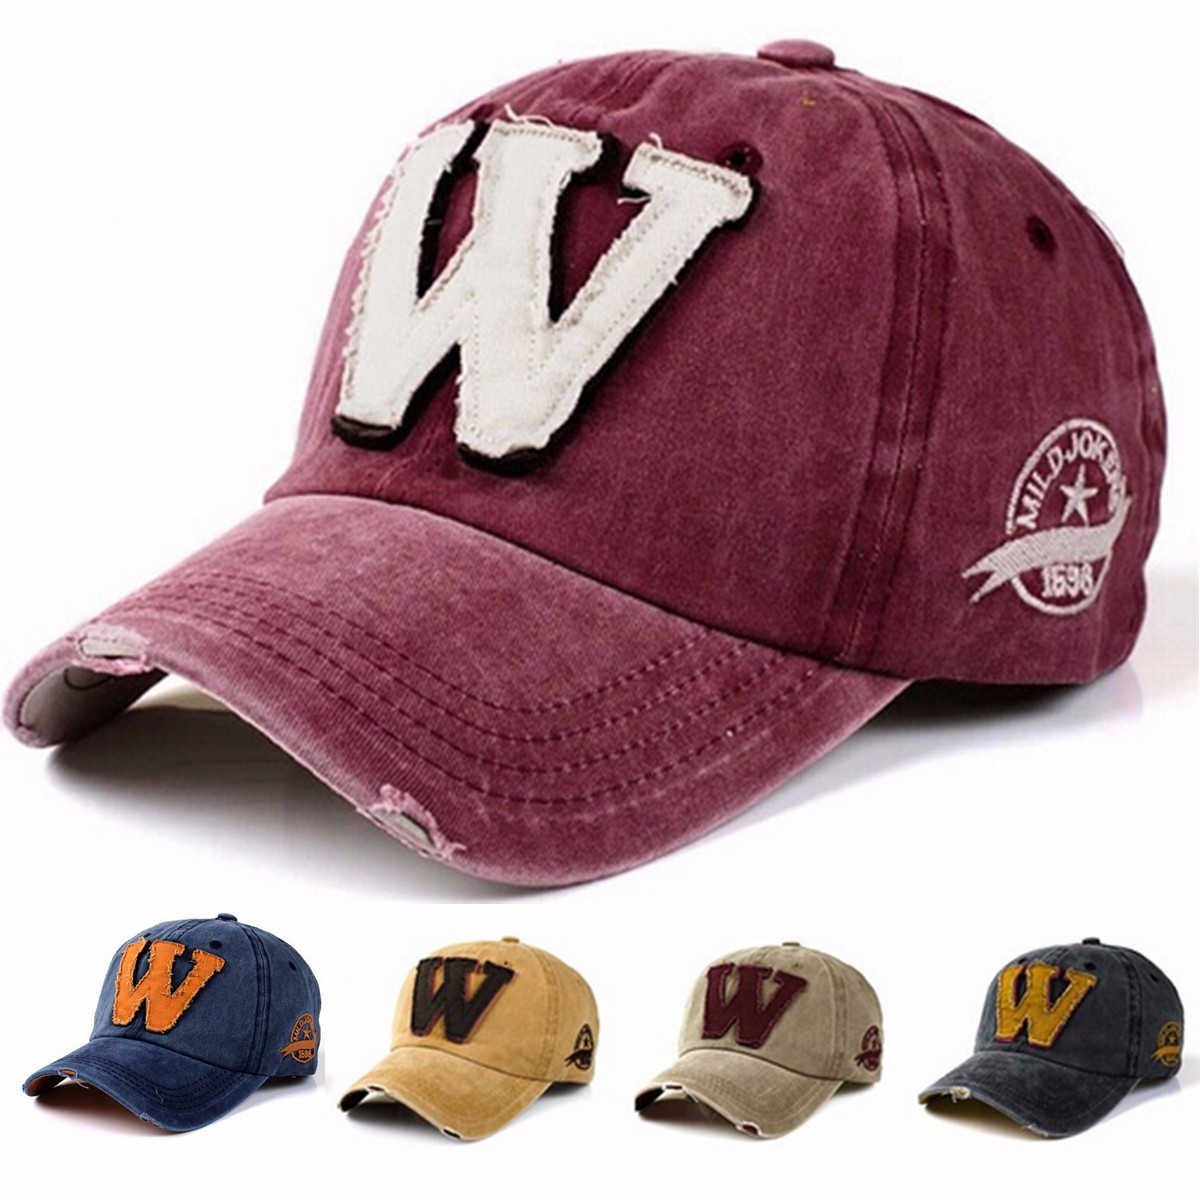 Letter W Embroidery Denim Washed Baseball Cap